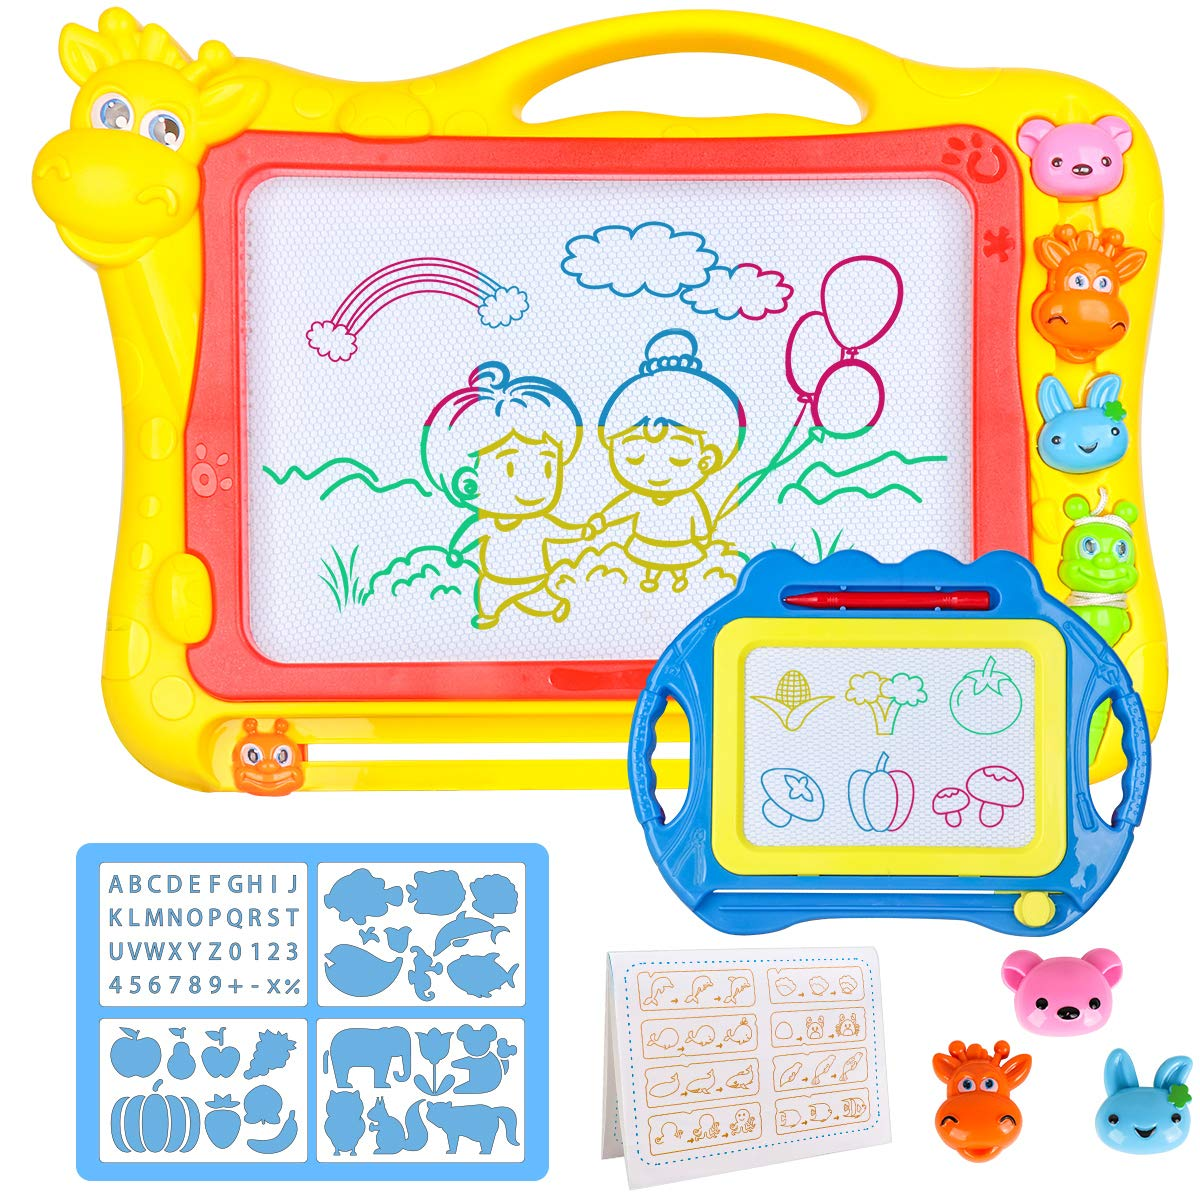 Magnetic Drawing Board for Kids - Large 17Inch Toddler Colorful Magna Doodle Pad with a Travel Size Etch Sketch Writing Board Pro with Magnet Pen, Child Education Learning Toys & Gifts for Boys Girls by Meland